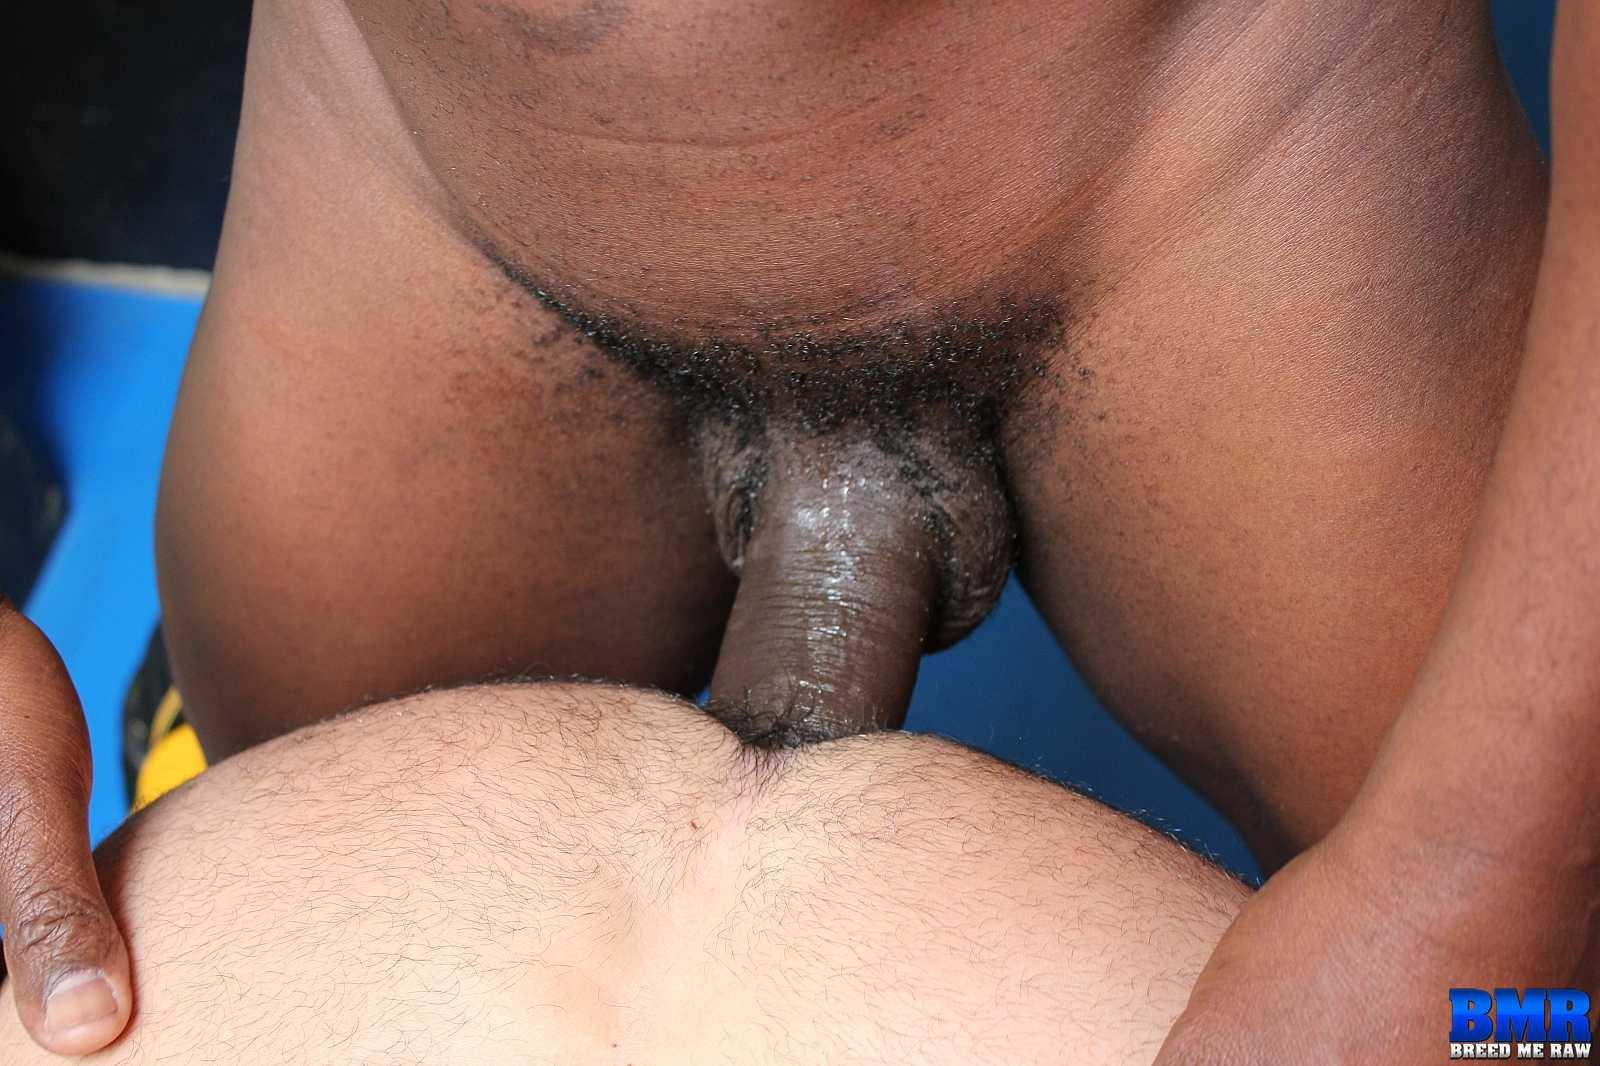 Breed-Me-Raw-Cutler-X-and-Adam-Russo-Black-Guy-With-Big-Black-Cock-Barebacking-White-Guy-Amateur-Gay-Porn-04 Real Life Boyfriends Cutler X Barebacking Adam Russo